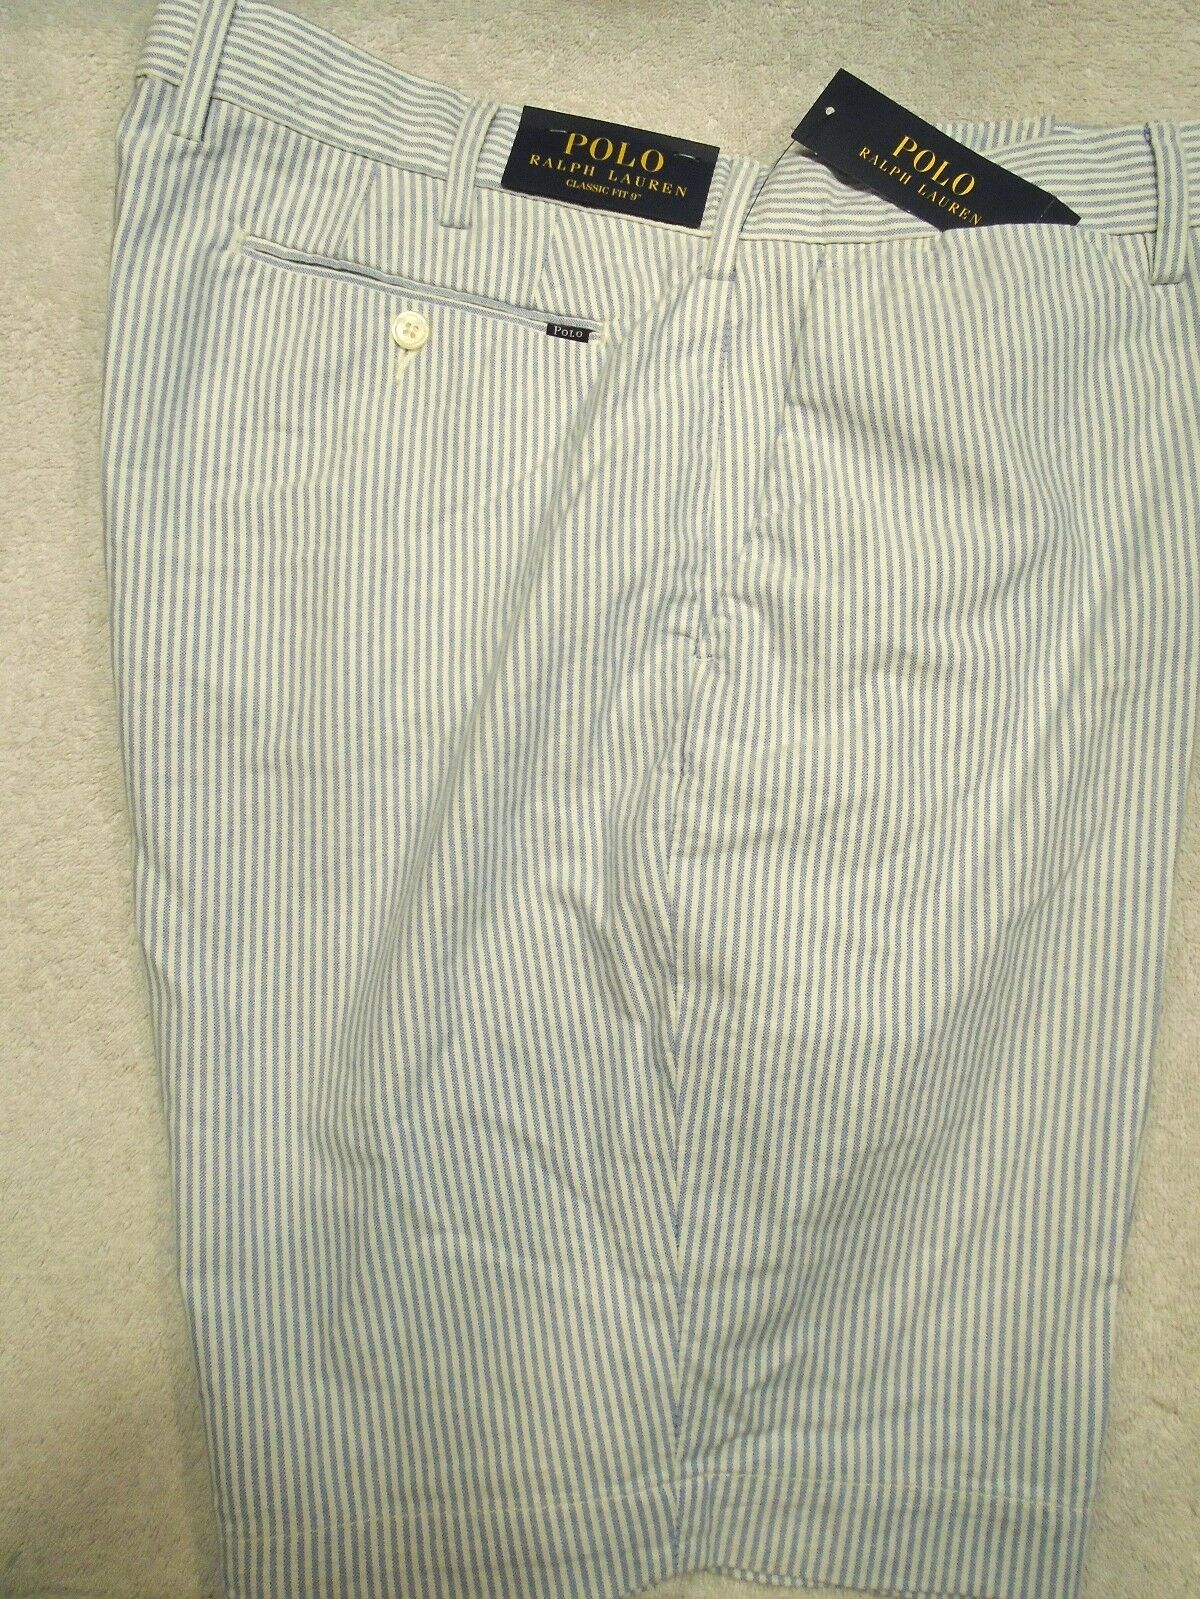 Polo Ralph Lauren 100% Cotton bluee Oxford Stripe  Shorts NWT 38 Waist